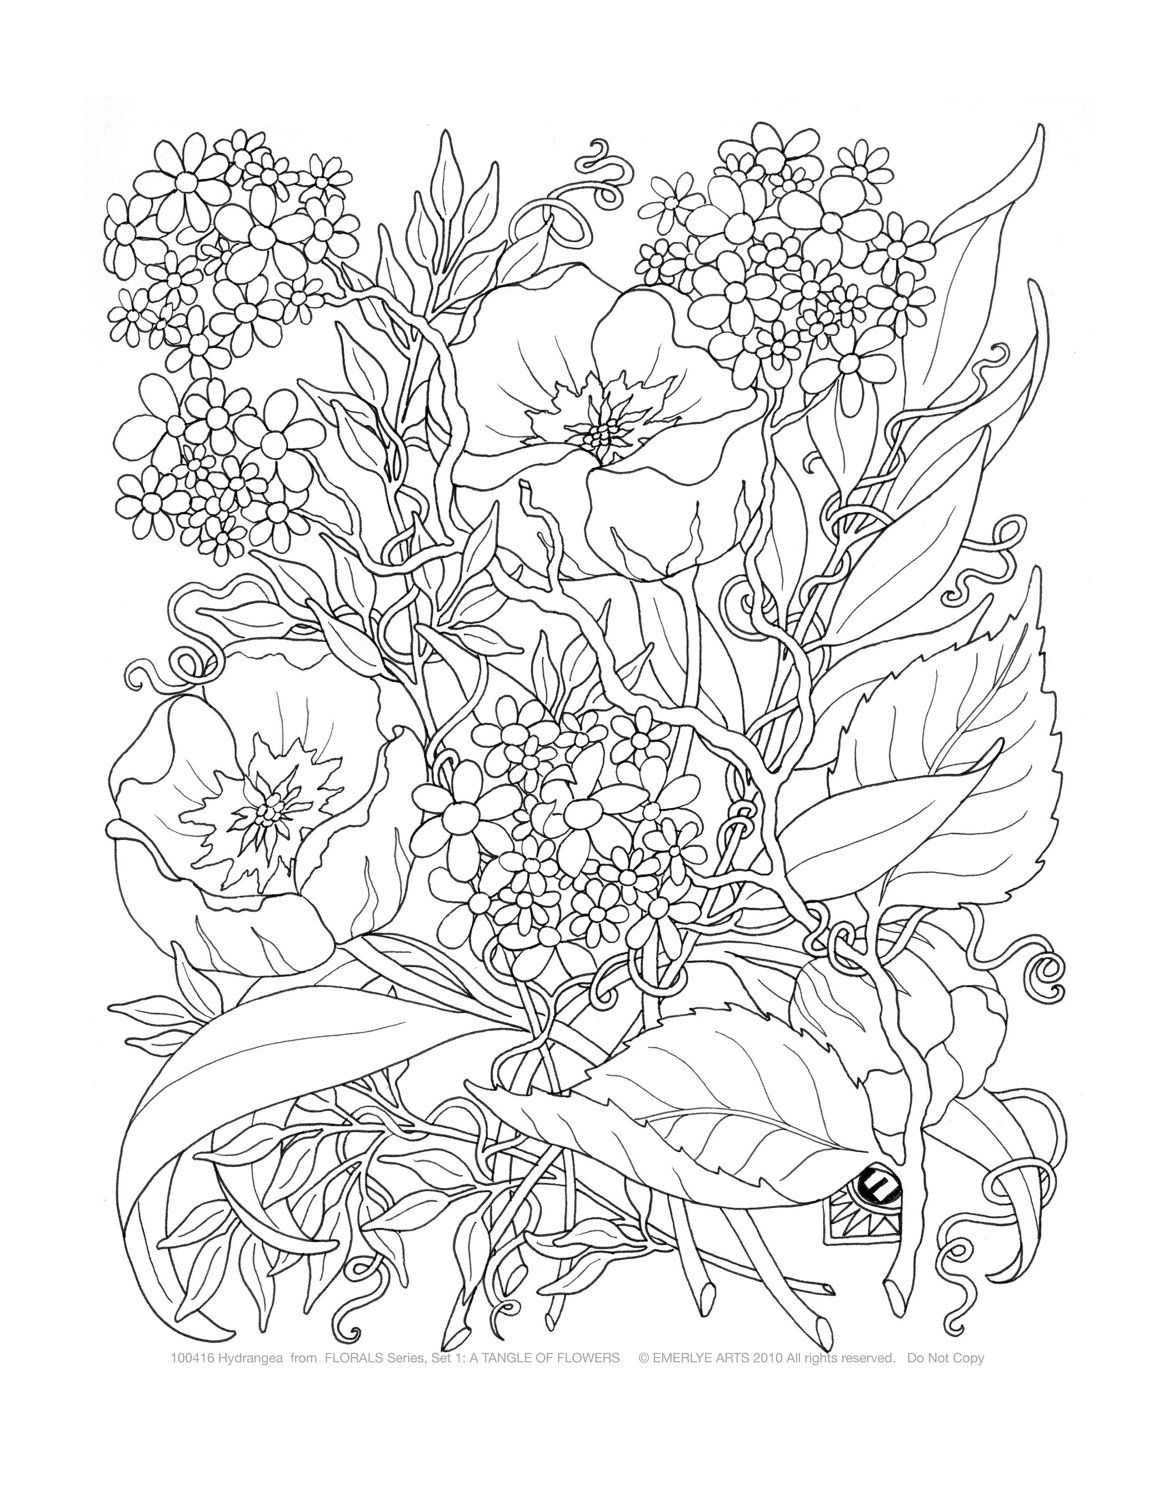 Colorfy coloring book for adults free online - Coloring Pages For Adults Free Large Images